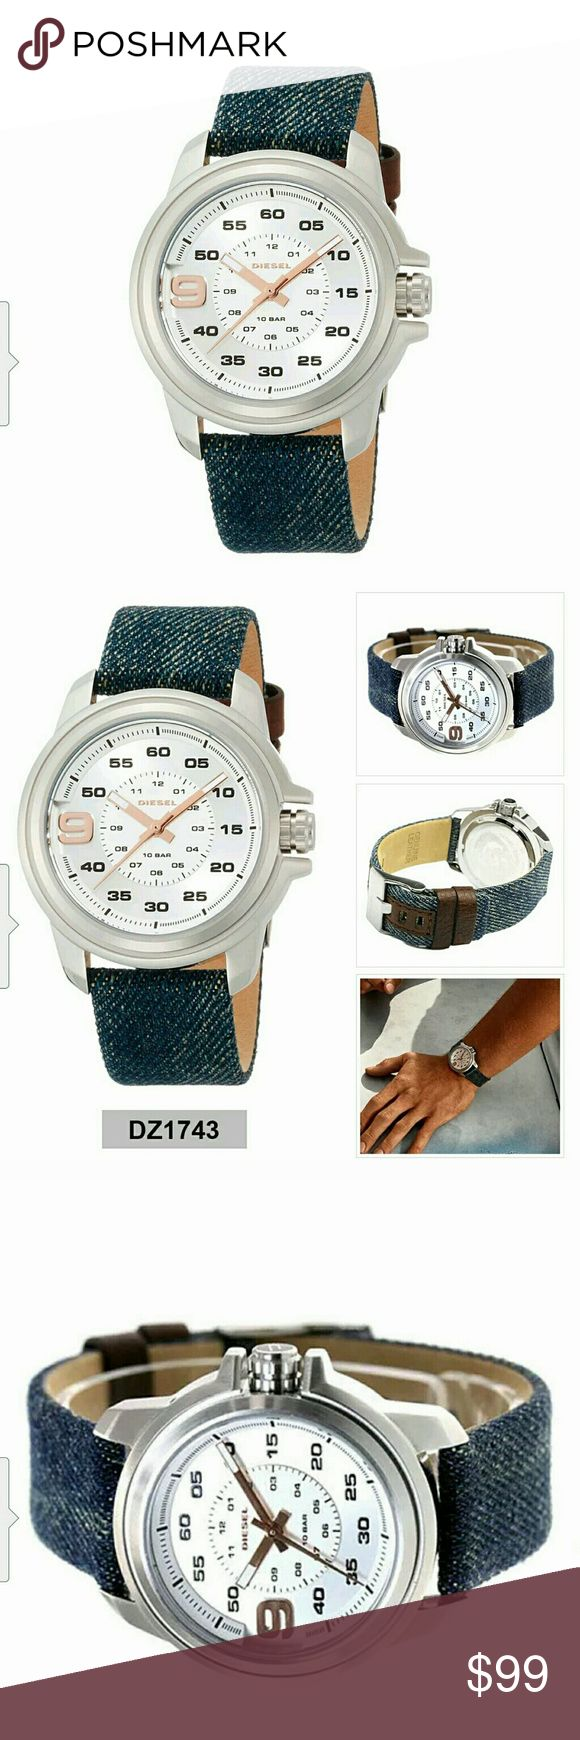 Men's Diesel Watch DZ1743 $274 Diesel Watch DZ1743  Retail Price : US$ 247.00  Made:  Dial Color: Silver Dial Bracelet Color: Blue Gender: Mens Style: Sport Display: Analog Case diameter: 43 (with crown) x 40 (W) x 10 mm (thickness) Face Height: 32 mm Lug Width: 20 mm Max Length: 220 mm Circumference Water Resistant: 100 Meter 10 Bar Movement: Quartz : Battery Movement Country: Japan Case: Stainless-Steel Case Bracelet: Nylon Strap Clasp: Buckle Caseback: Stainless-Steel Hand: Luminous Hands…